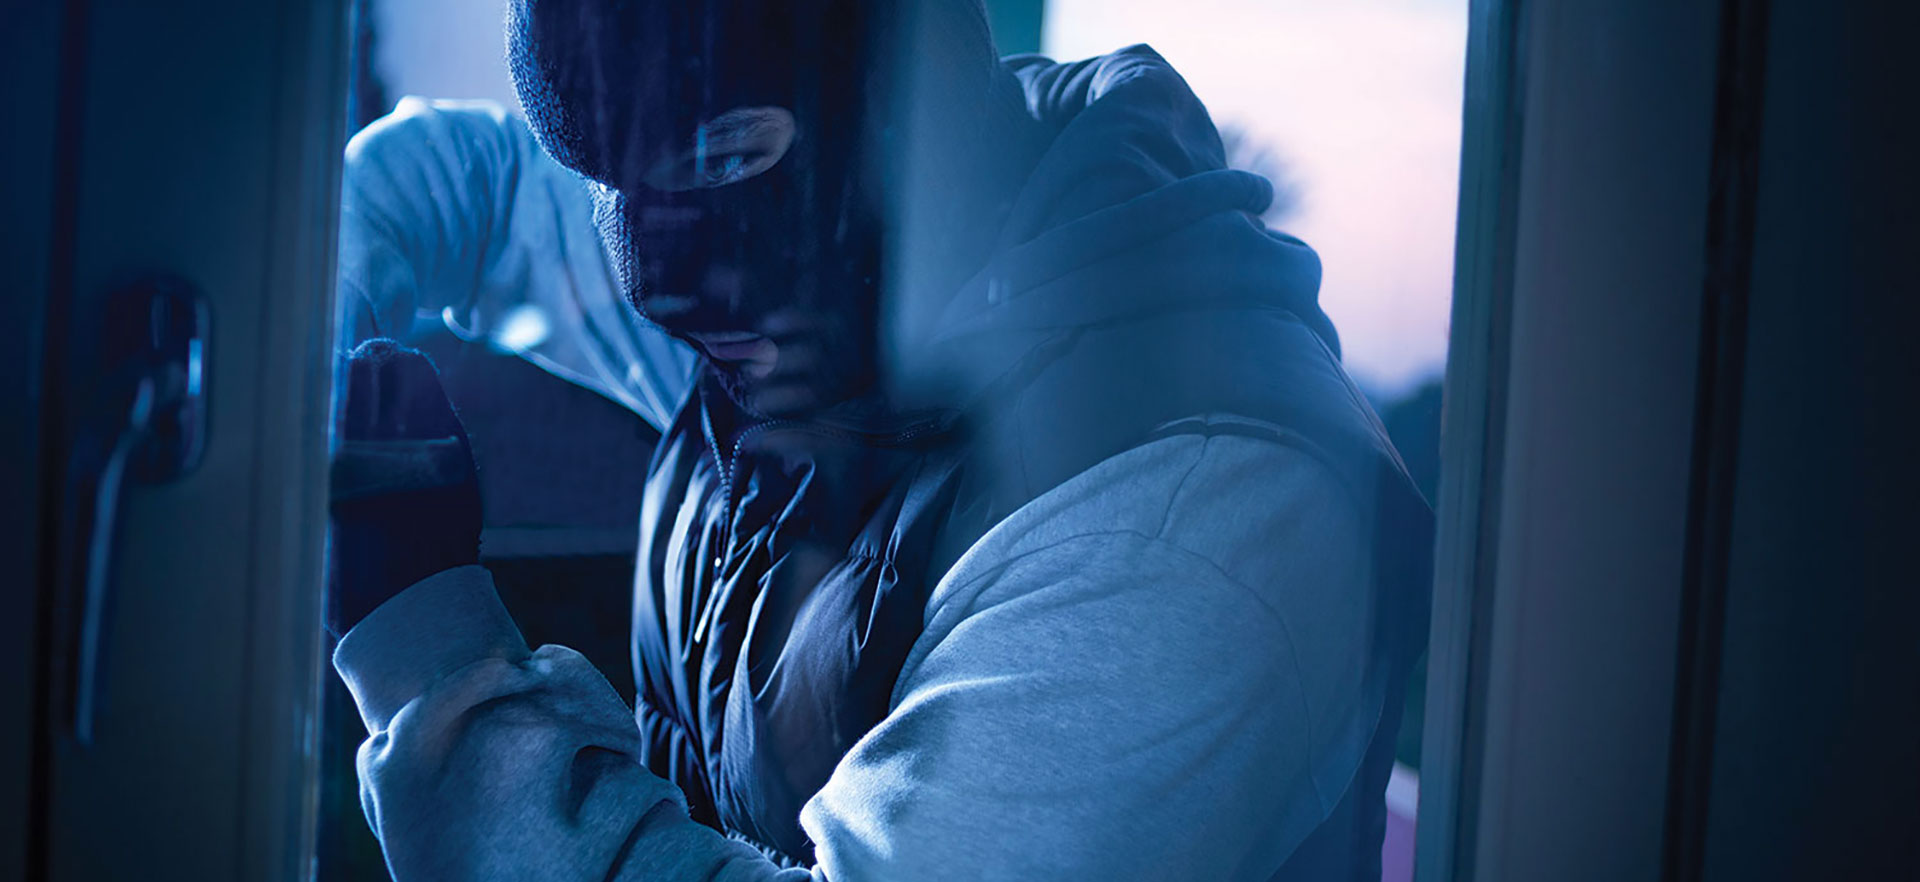 Protecting your community through crime prevention